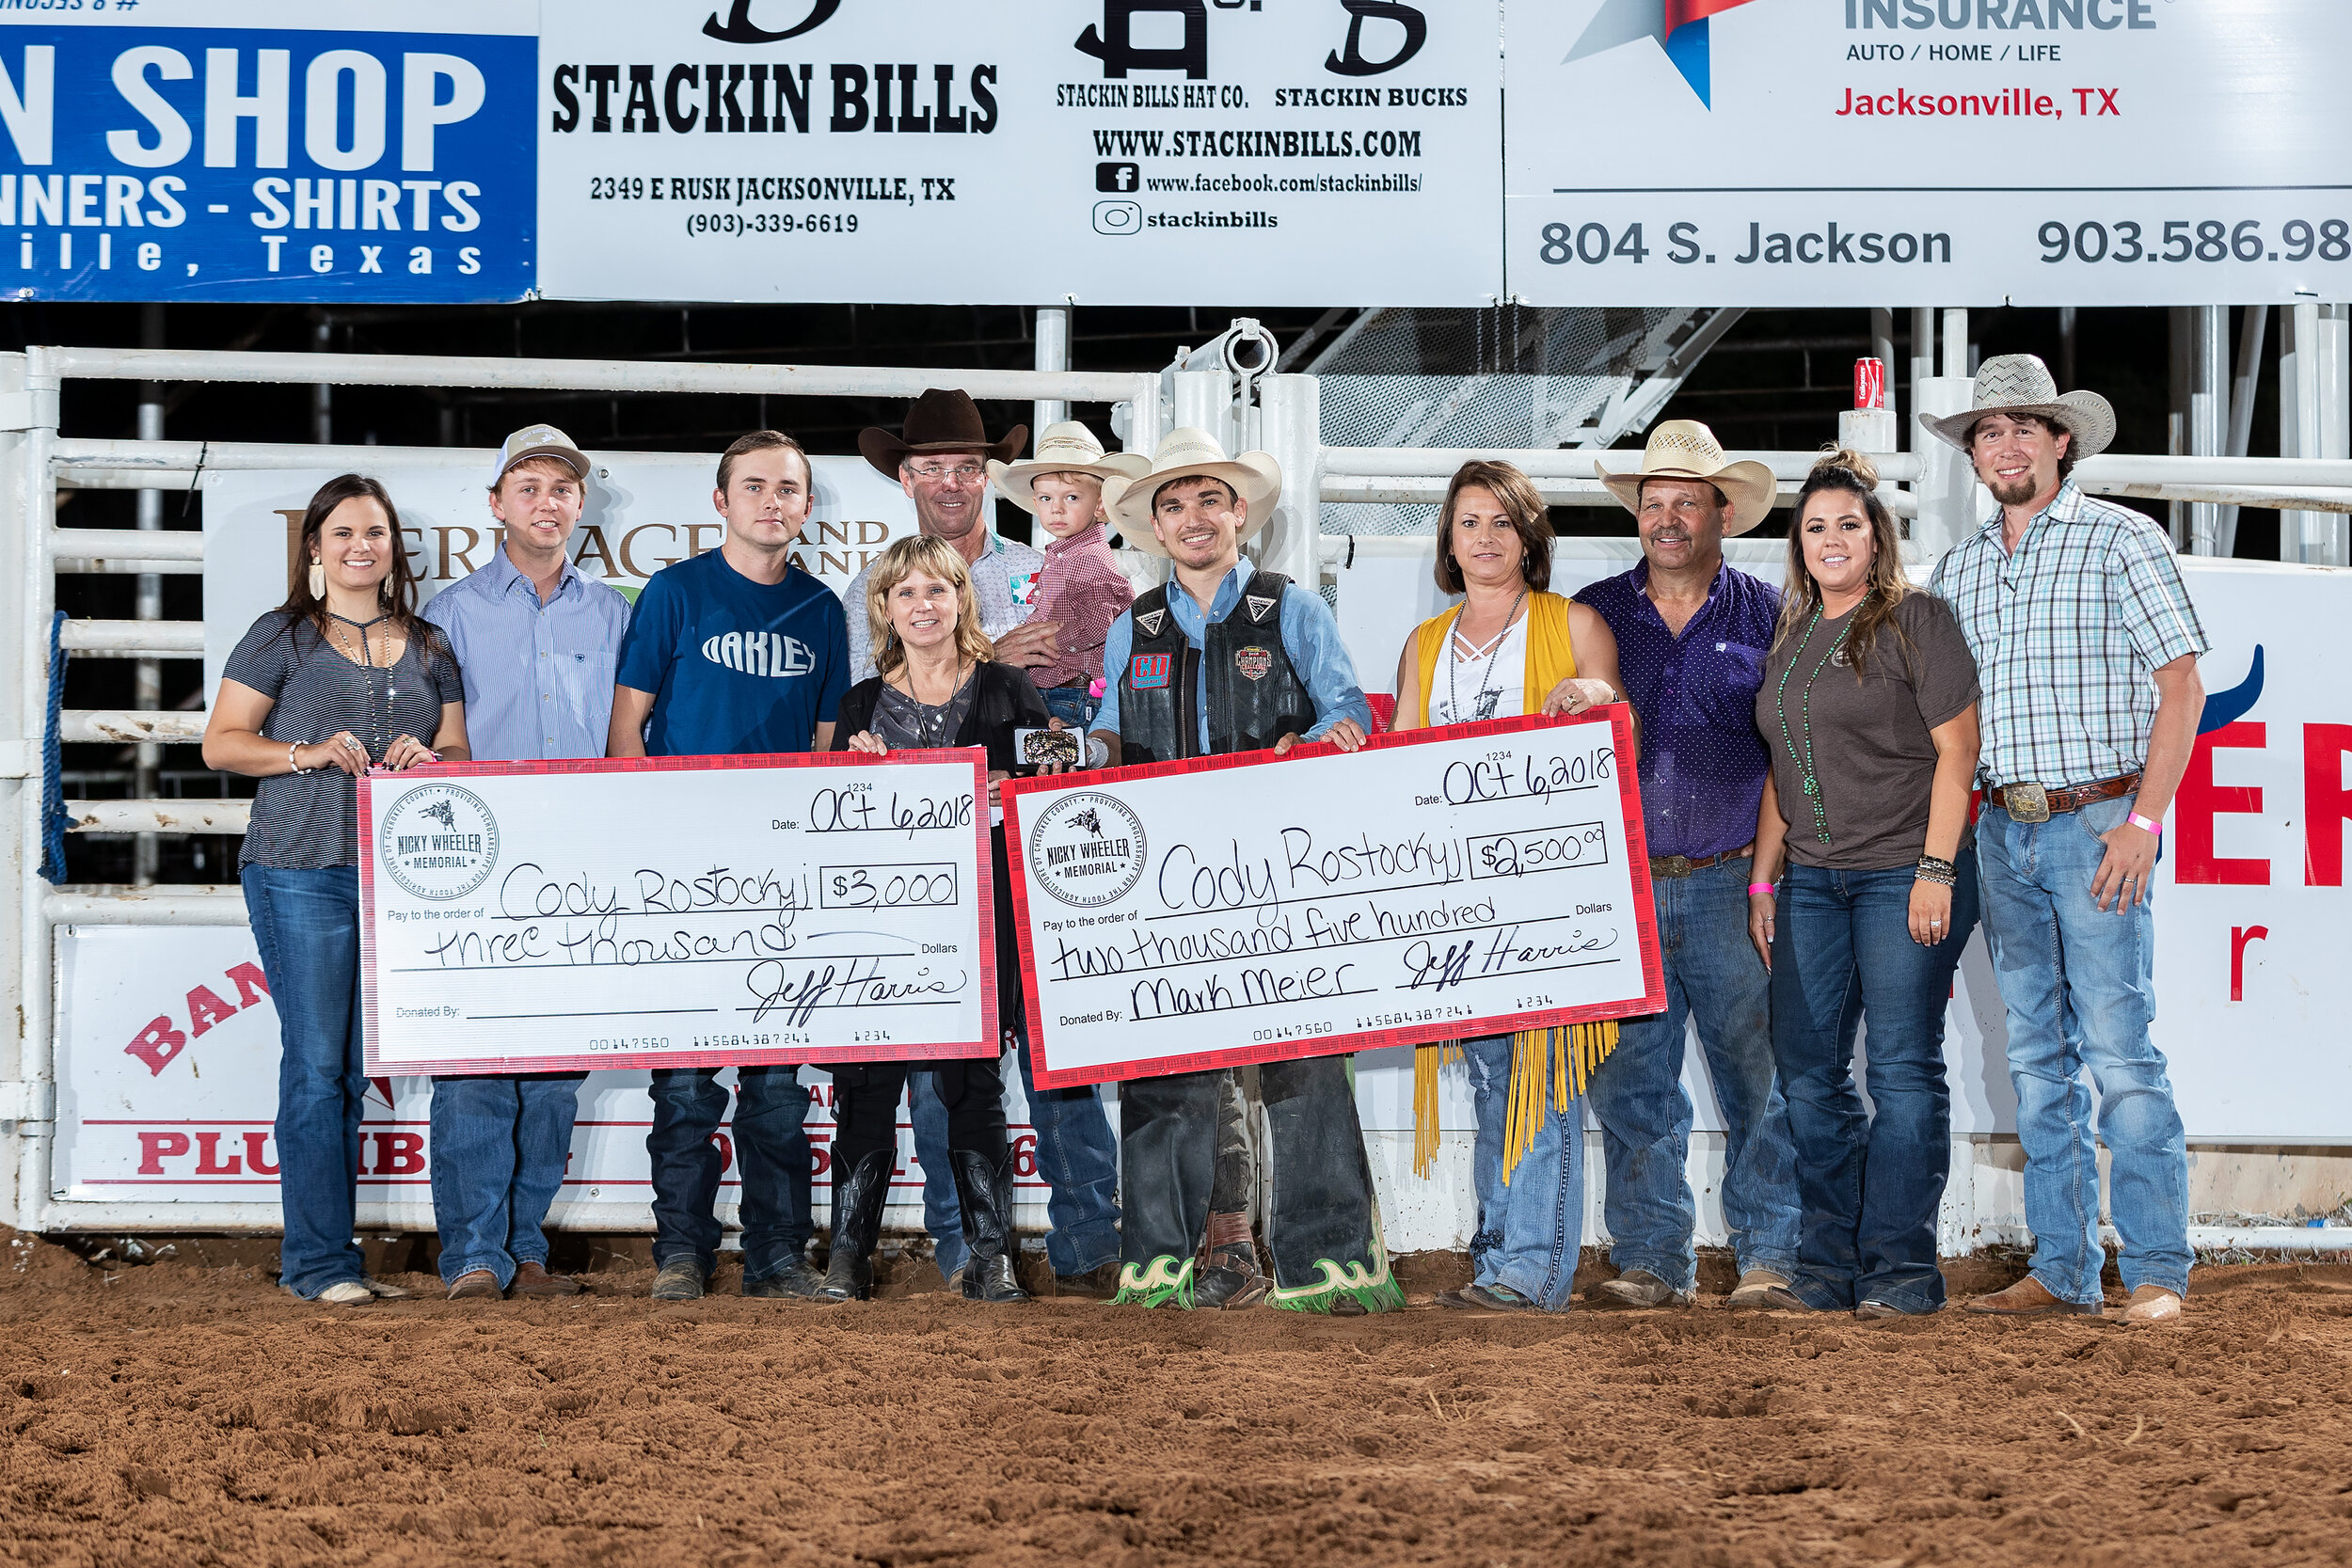 Tuff Hedeman presents the check to last years champ Cody Rostockyj. The Nicky Wheeler Memorial Bull Riding serves as the primary fundraiser for the youth of Cherokee County. Co-Producers, Jeff Harris and Family, Haley and Brian Beasley with the Nicky Wheeler family, and Tuff Hedeman and son. Photo by Todd Brewer.